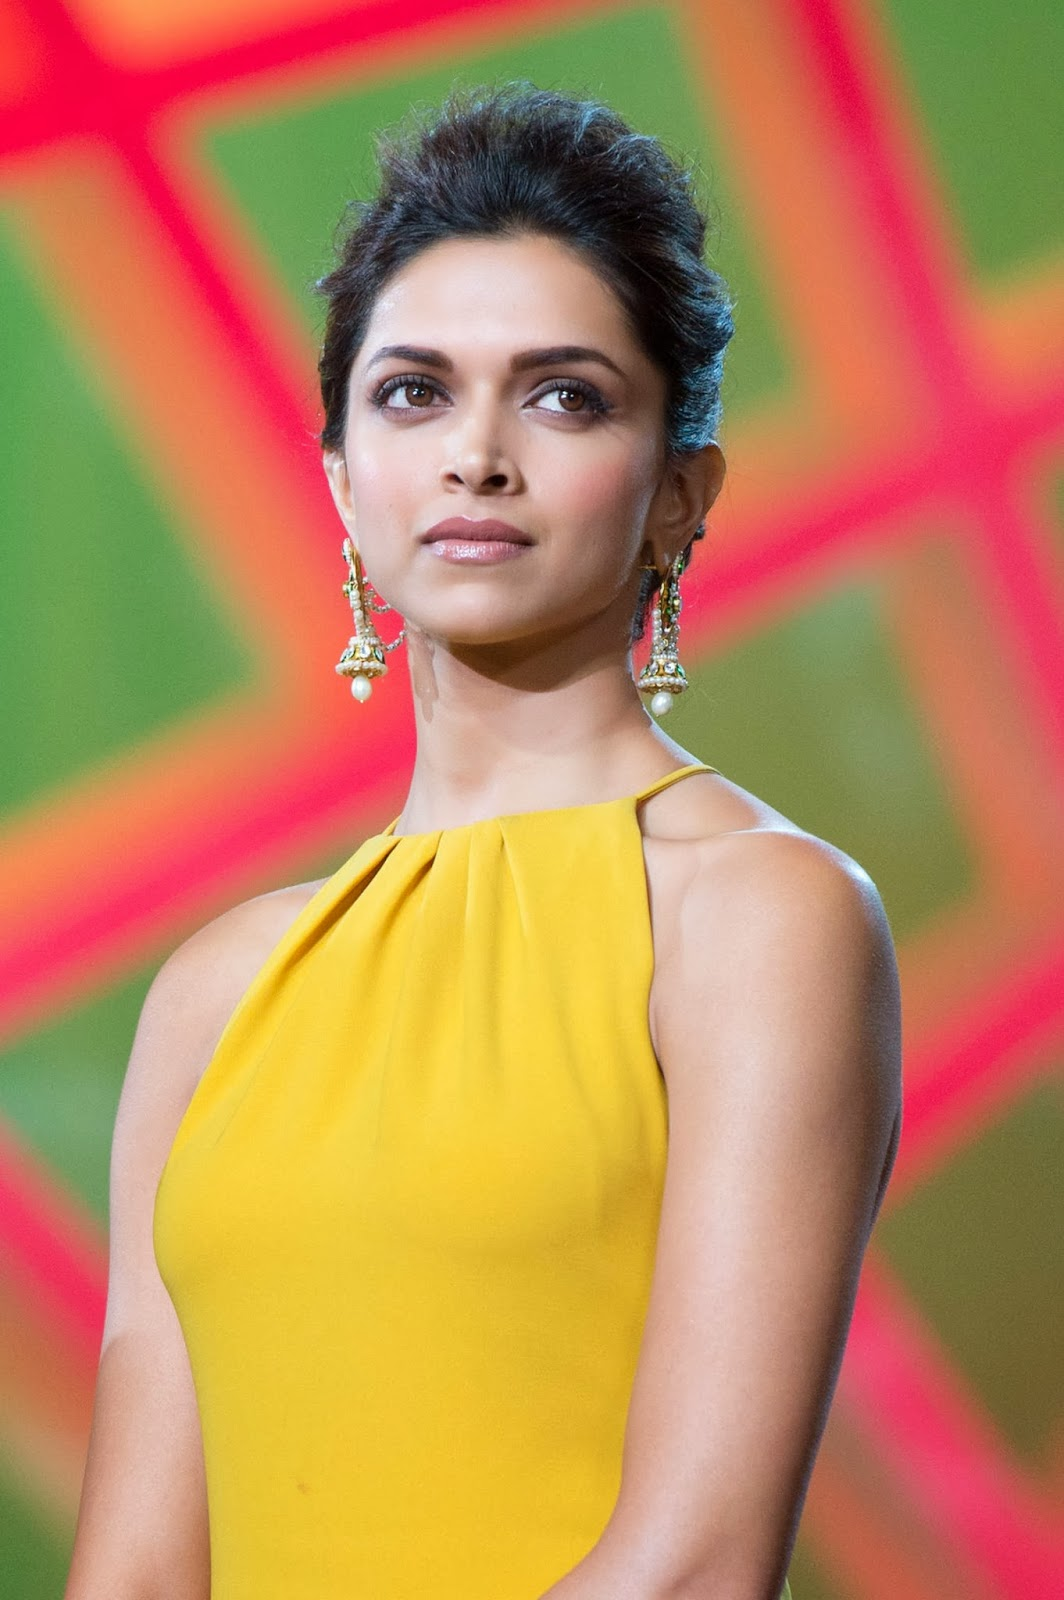 Deepika Padukone Facts And New Pictures 2014 | Beautiful World ...